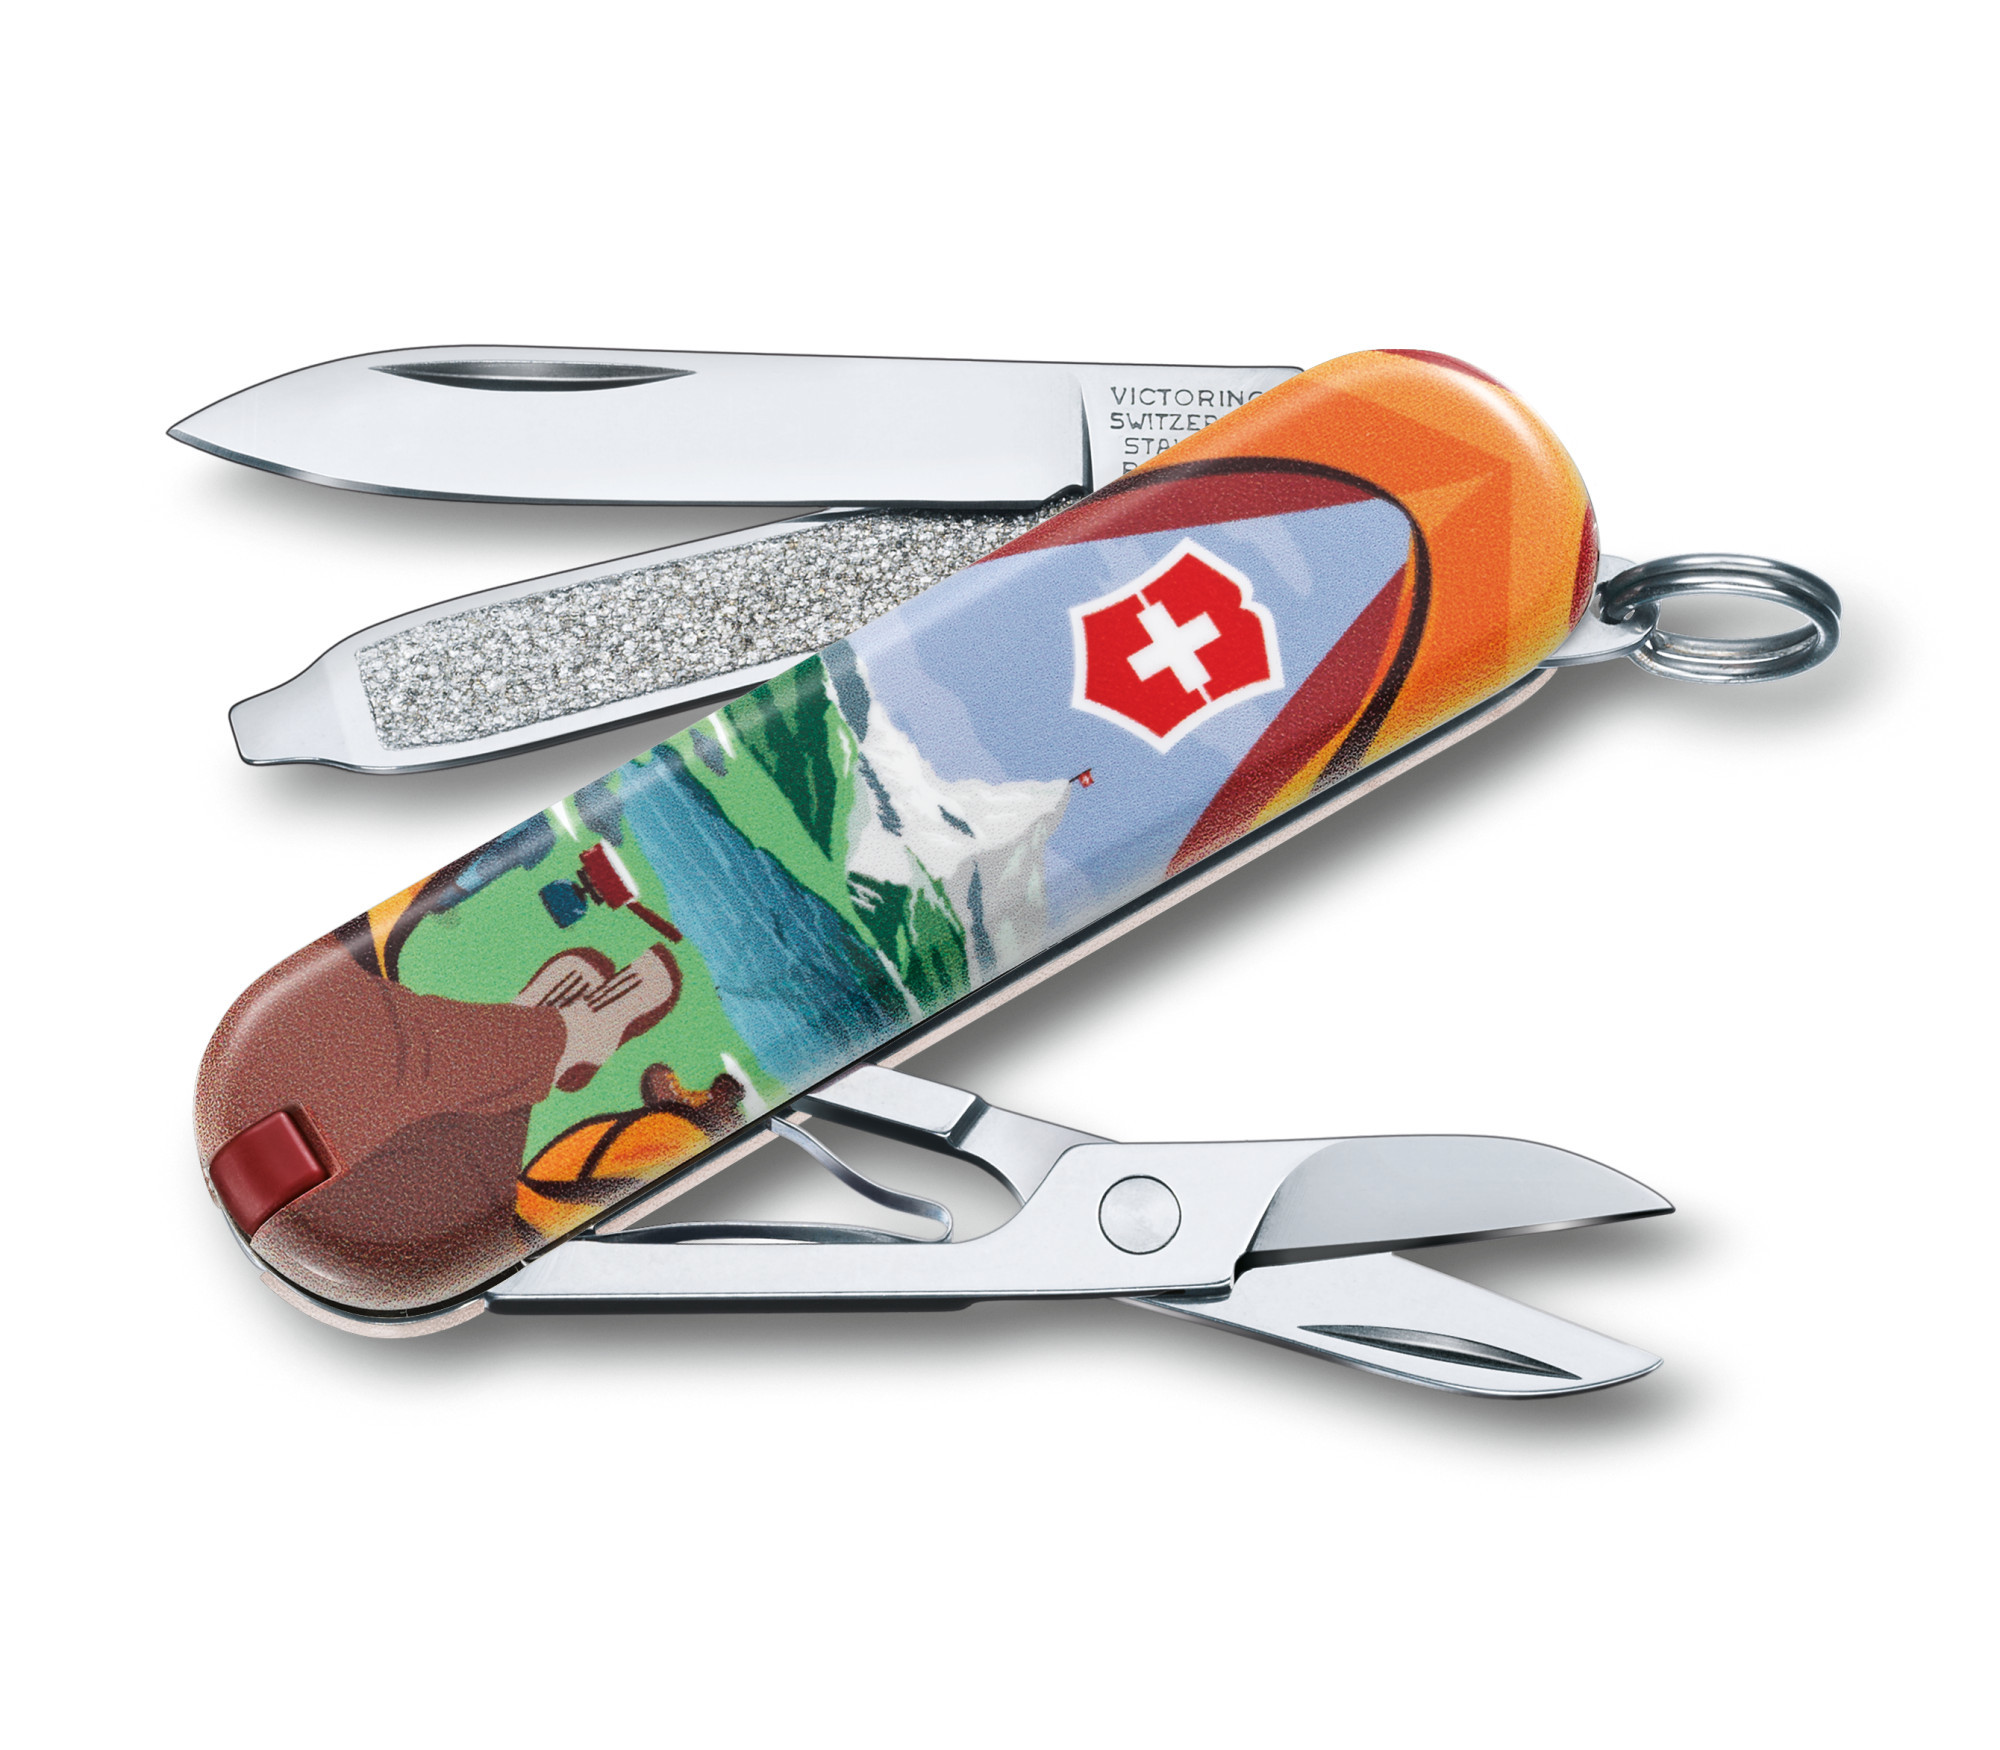 Нож перочинный Victorinox Classic Call of Nature (0.6223.L1802) 58 мм 7 функций нож перочинный victorinox hunter 0 8873